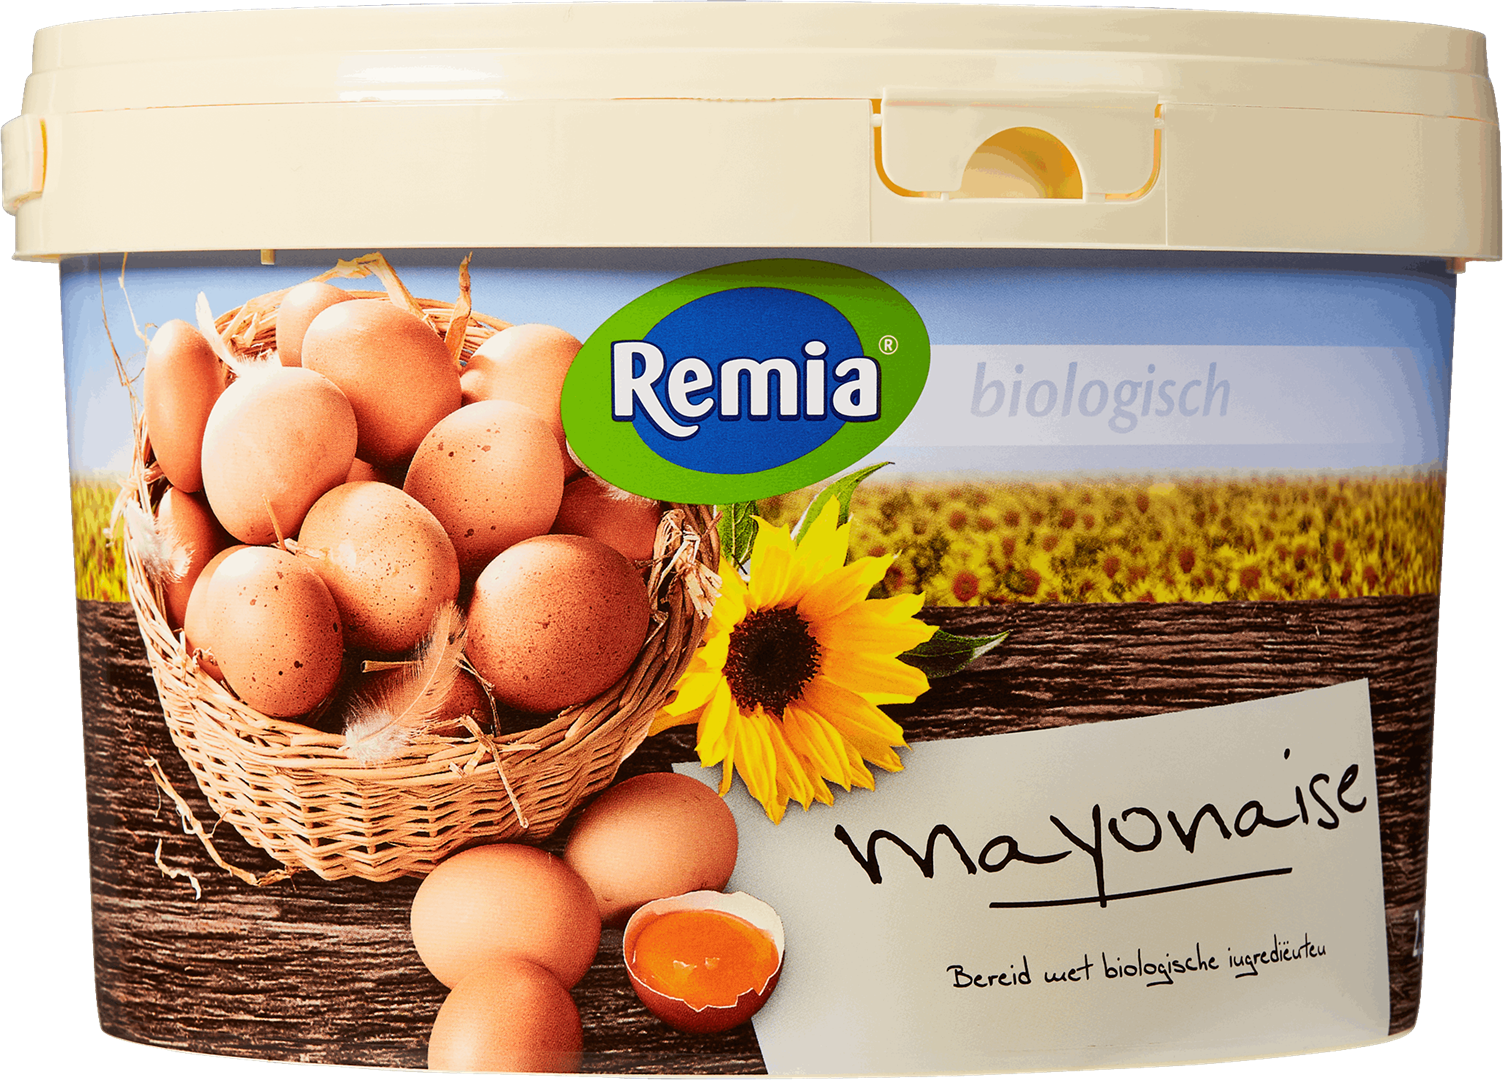 Productafbeelding Remia Biologische Mayonaise   Emmer 2,5 L